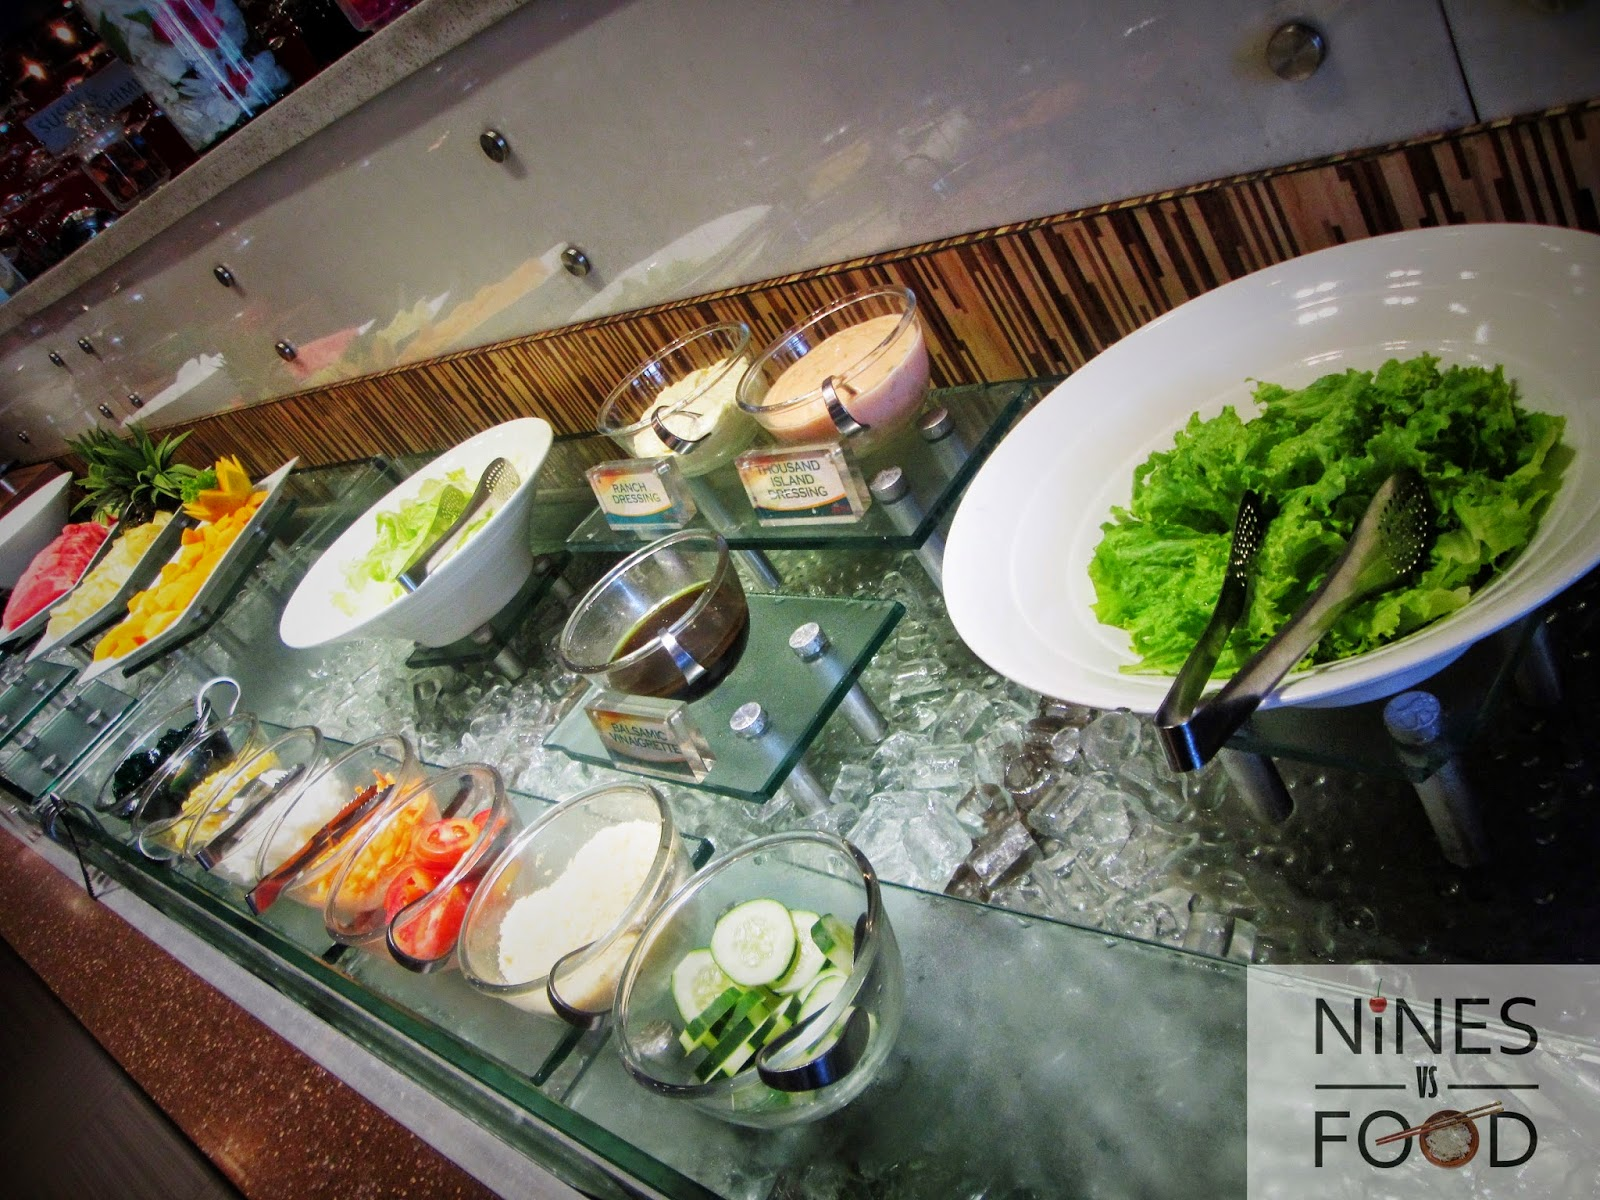 Nines vs. Food - The Buffet at Commonwealth-22.jpg